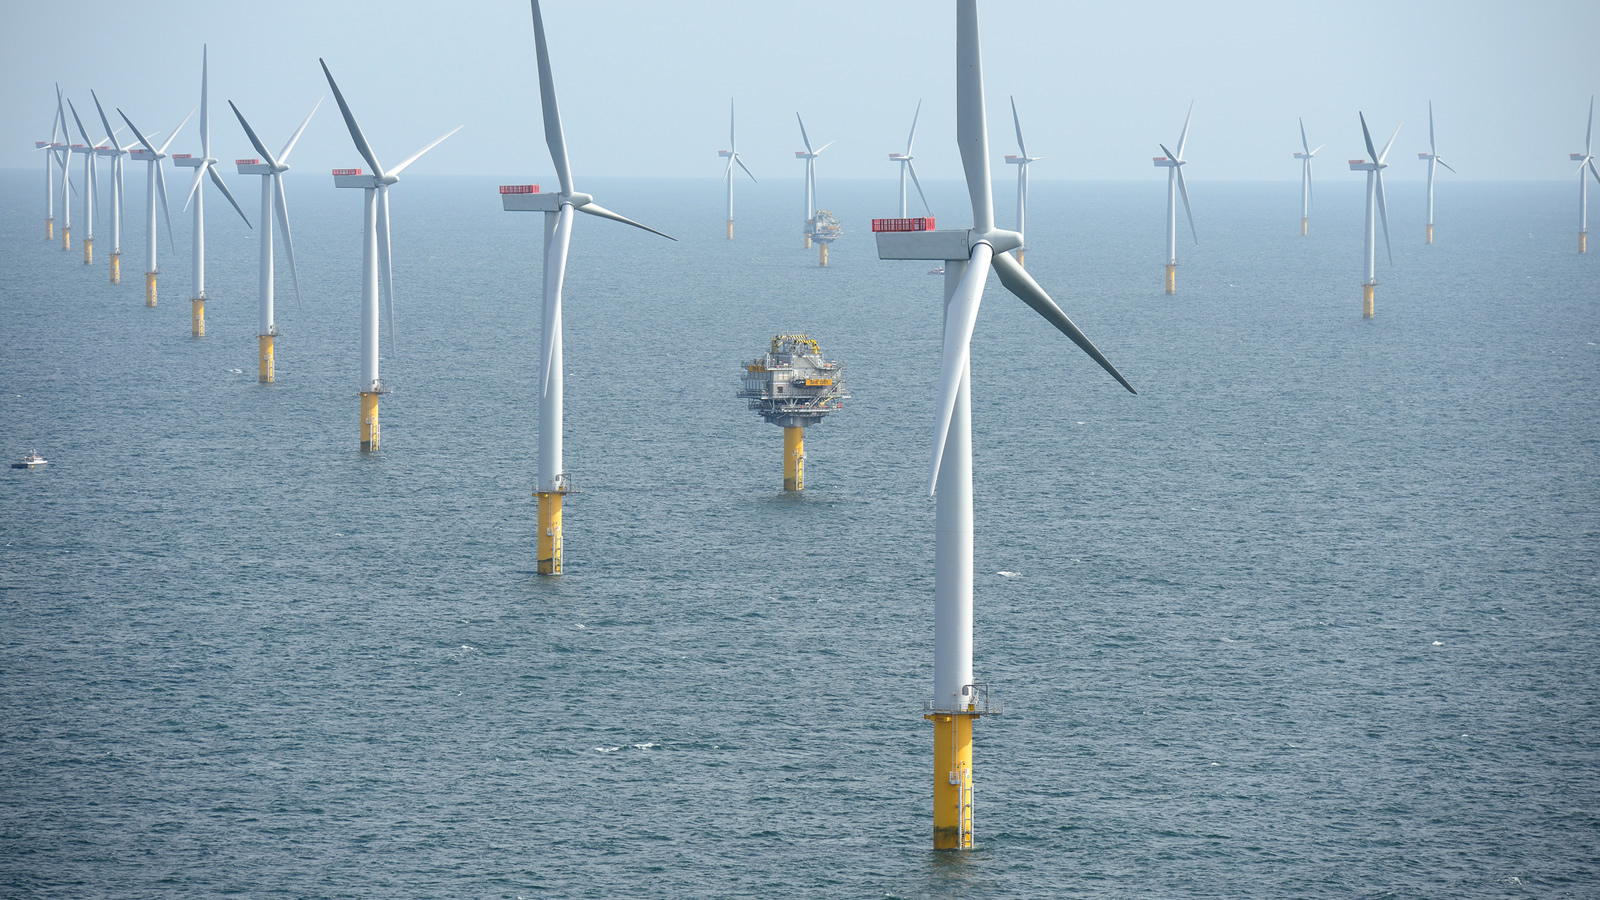 <h4>6 million</h4><h5>Approved offshore areas could power 6 million homes</h5><em>Sherringham Shoal Wind Farm, England / Harald Pettersen/Statoil CC BY 2.0</em>